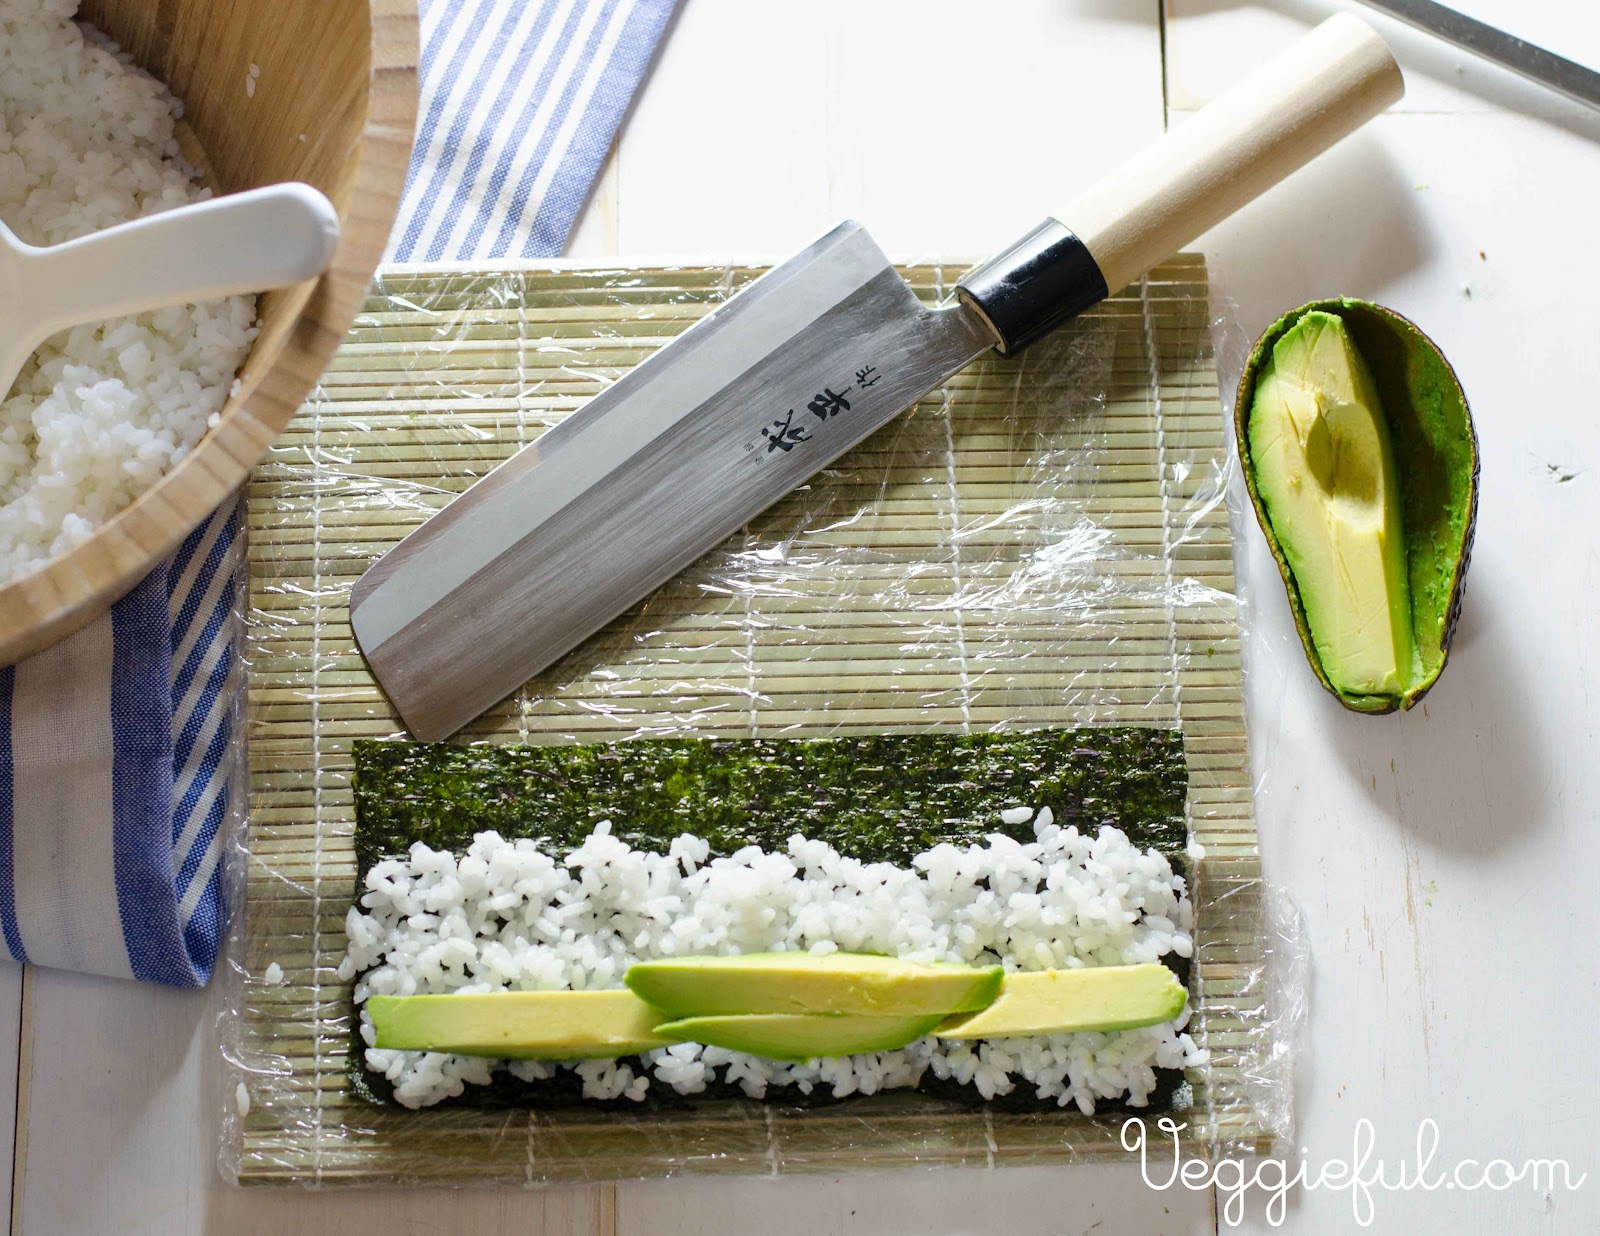 Cut Avocado In Half Remove The Seed Slice The Avocado Lengthwise Into  Thick Strips And Scoop Out With A Spoon Position Avocado Strips In A  Single,